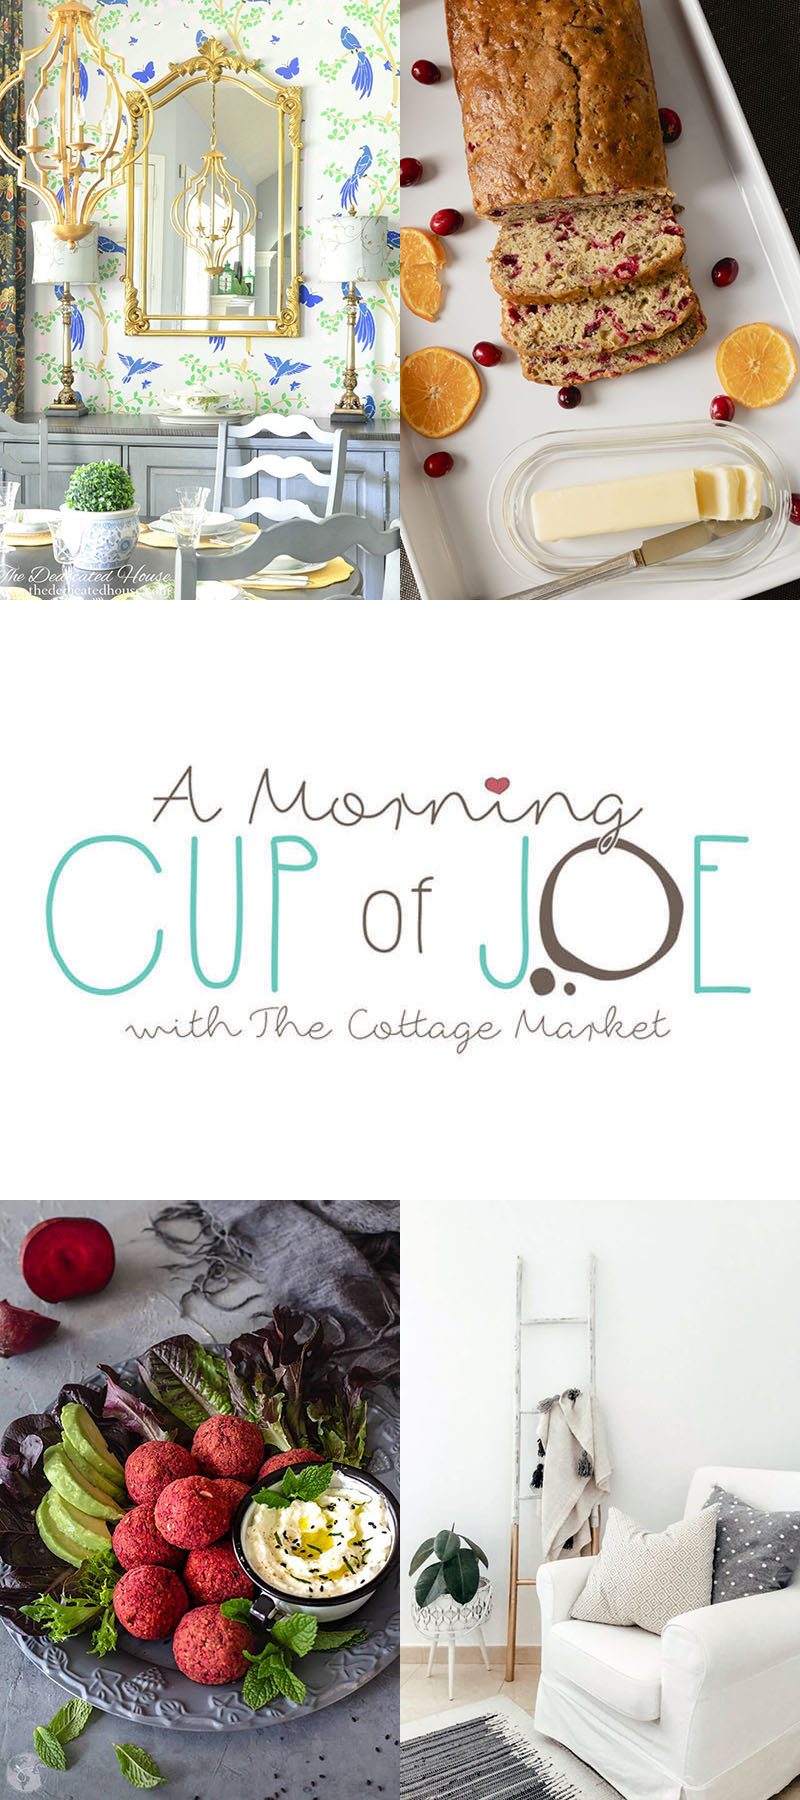 Cup of Joe Link Up Feature Button